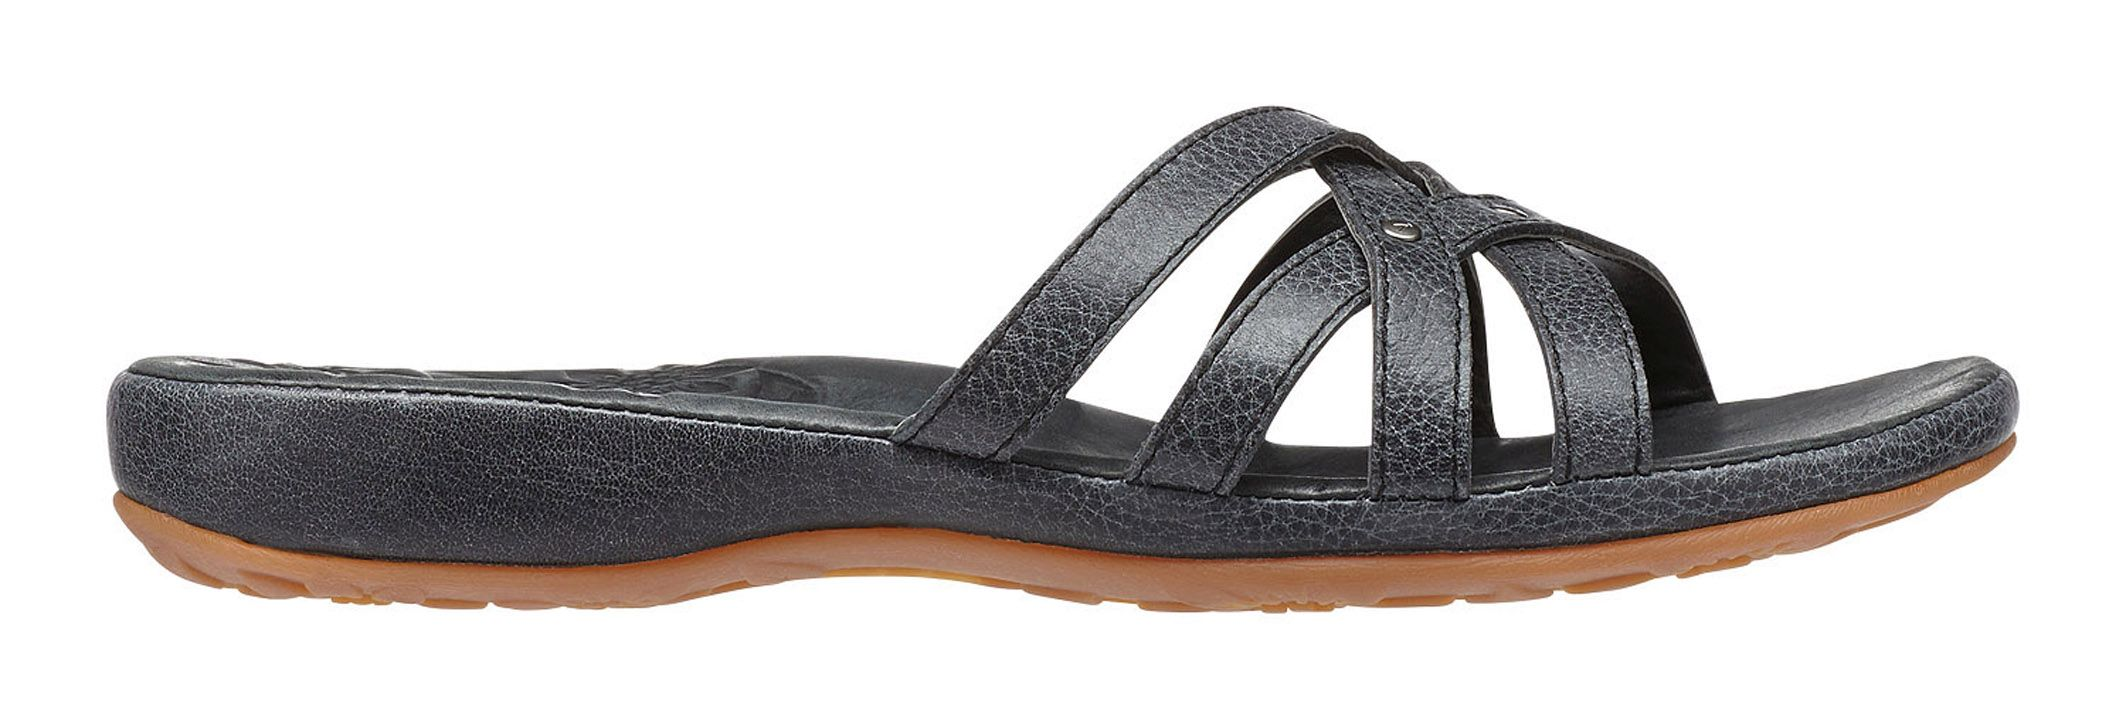 Keen City Of Palms Slide Solid Black-30